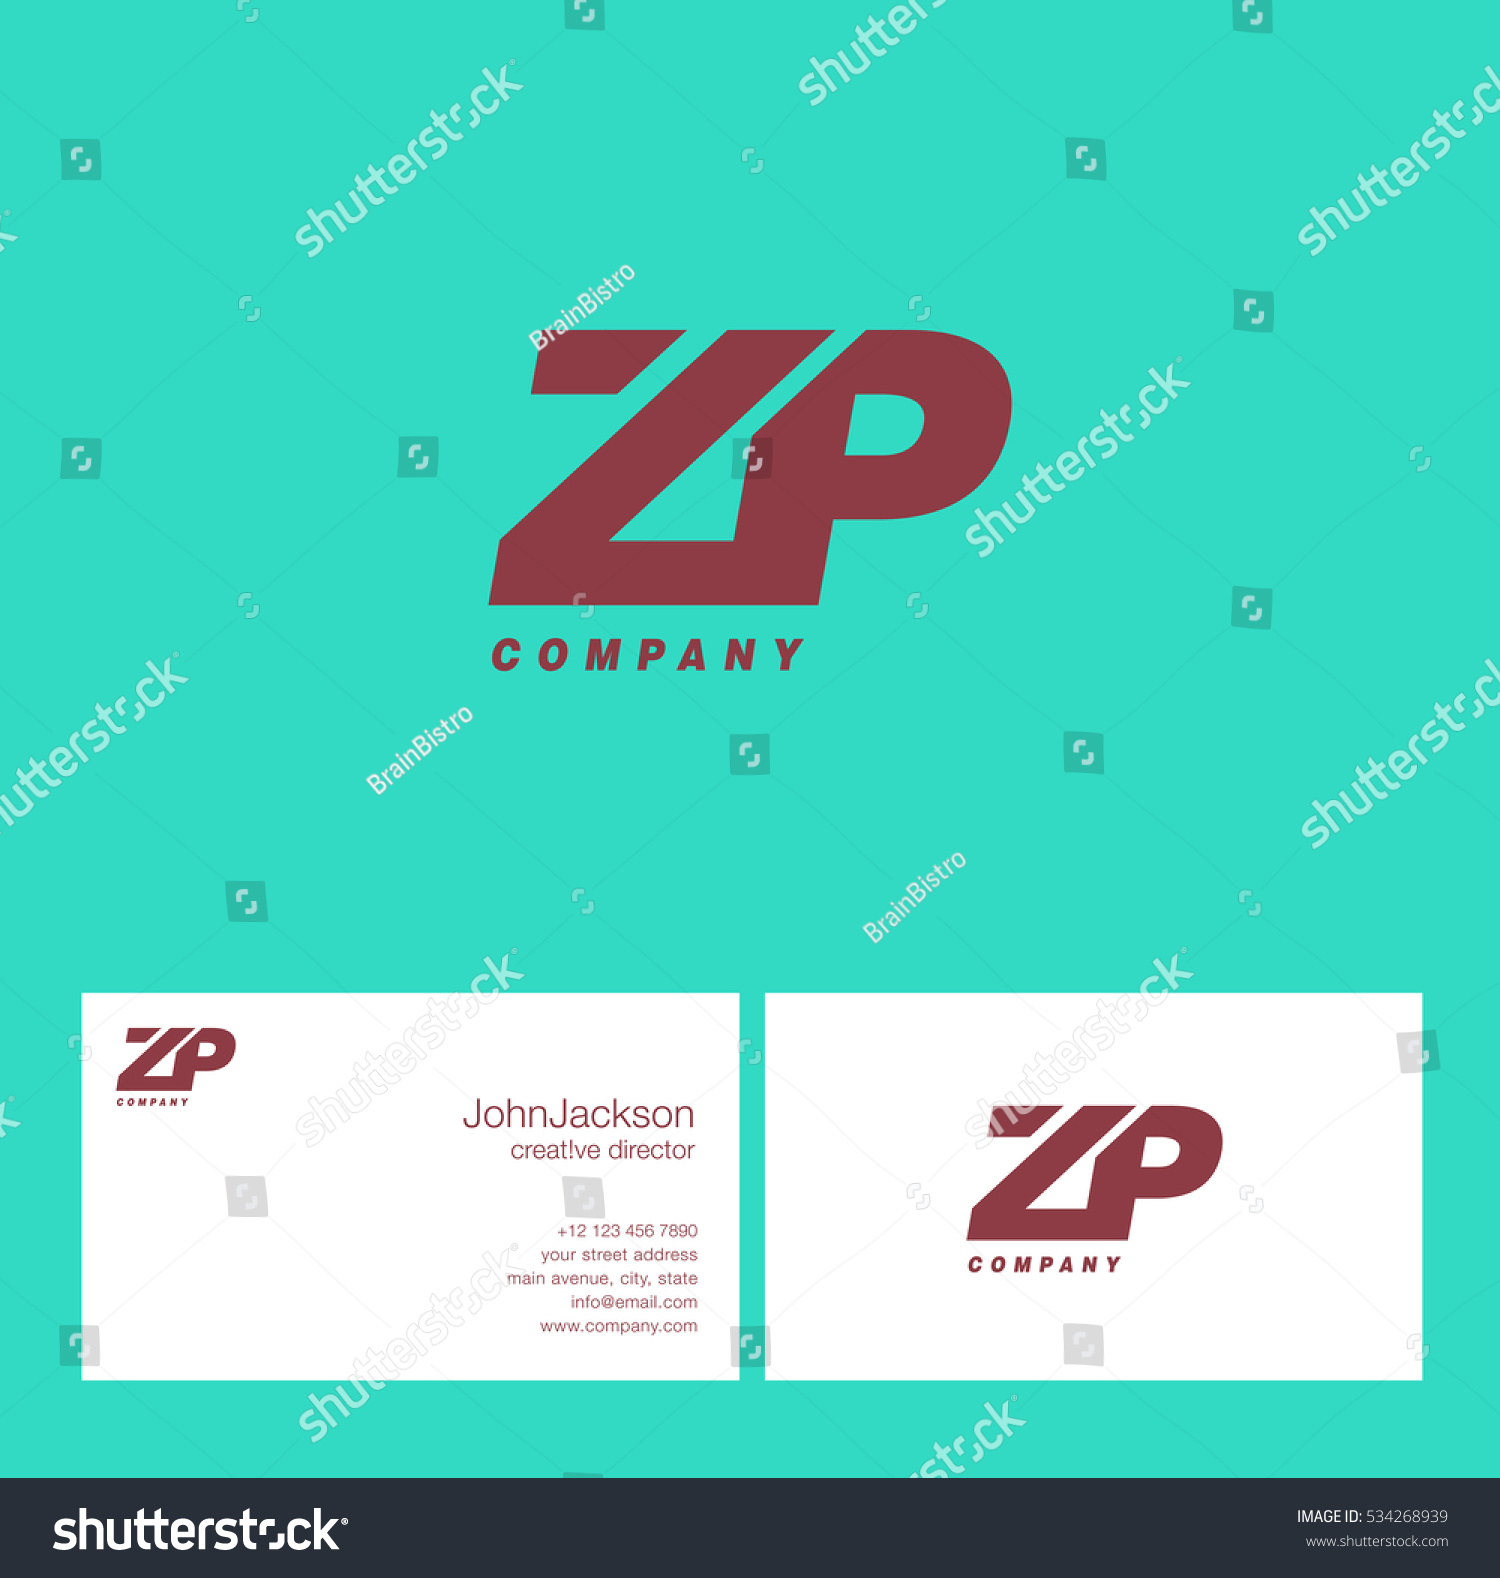 Unusual 1 Page Resumes Tall 10 Envelope Template Indesign Flat 100 Day Plan Template 10x13 Envelope Template Old 16x20 Collage Template Yellow18th Birthday Invitation Templates Z P Letters Logo Business Card Stock Vector 534268939   Shutterstock